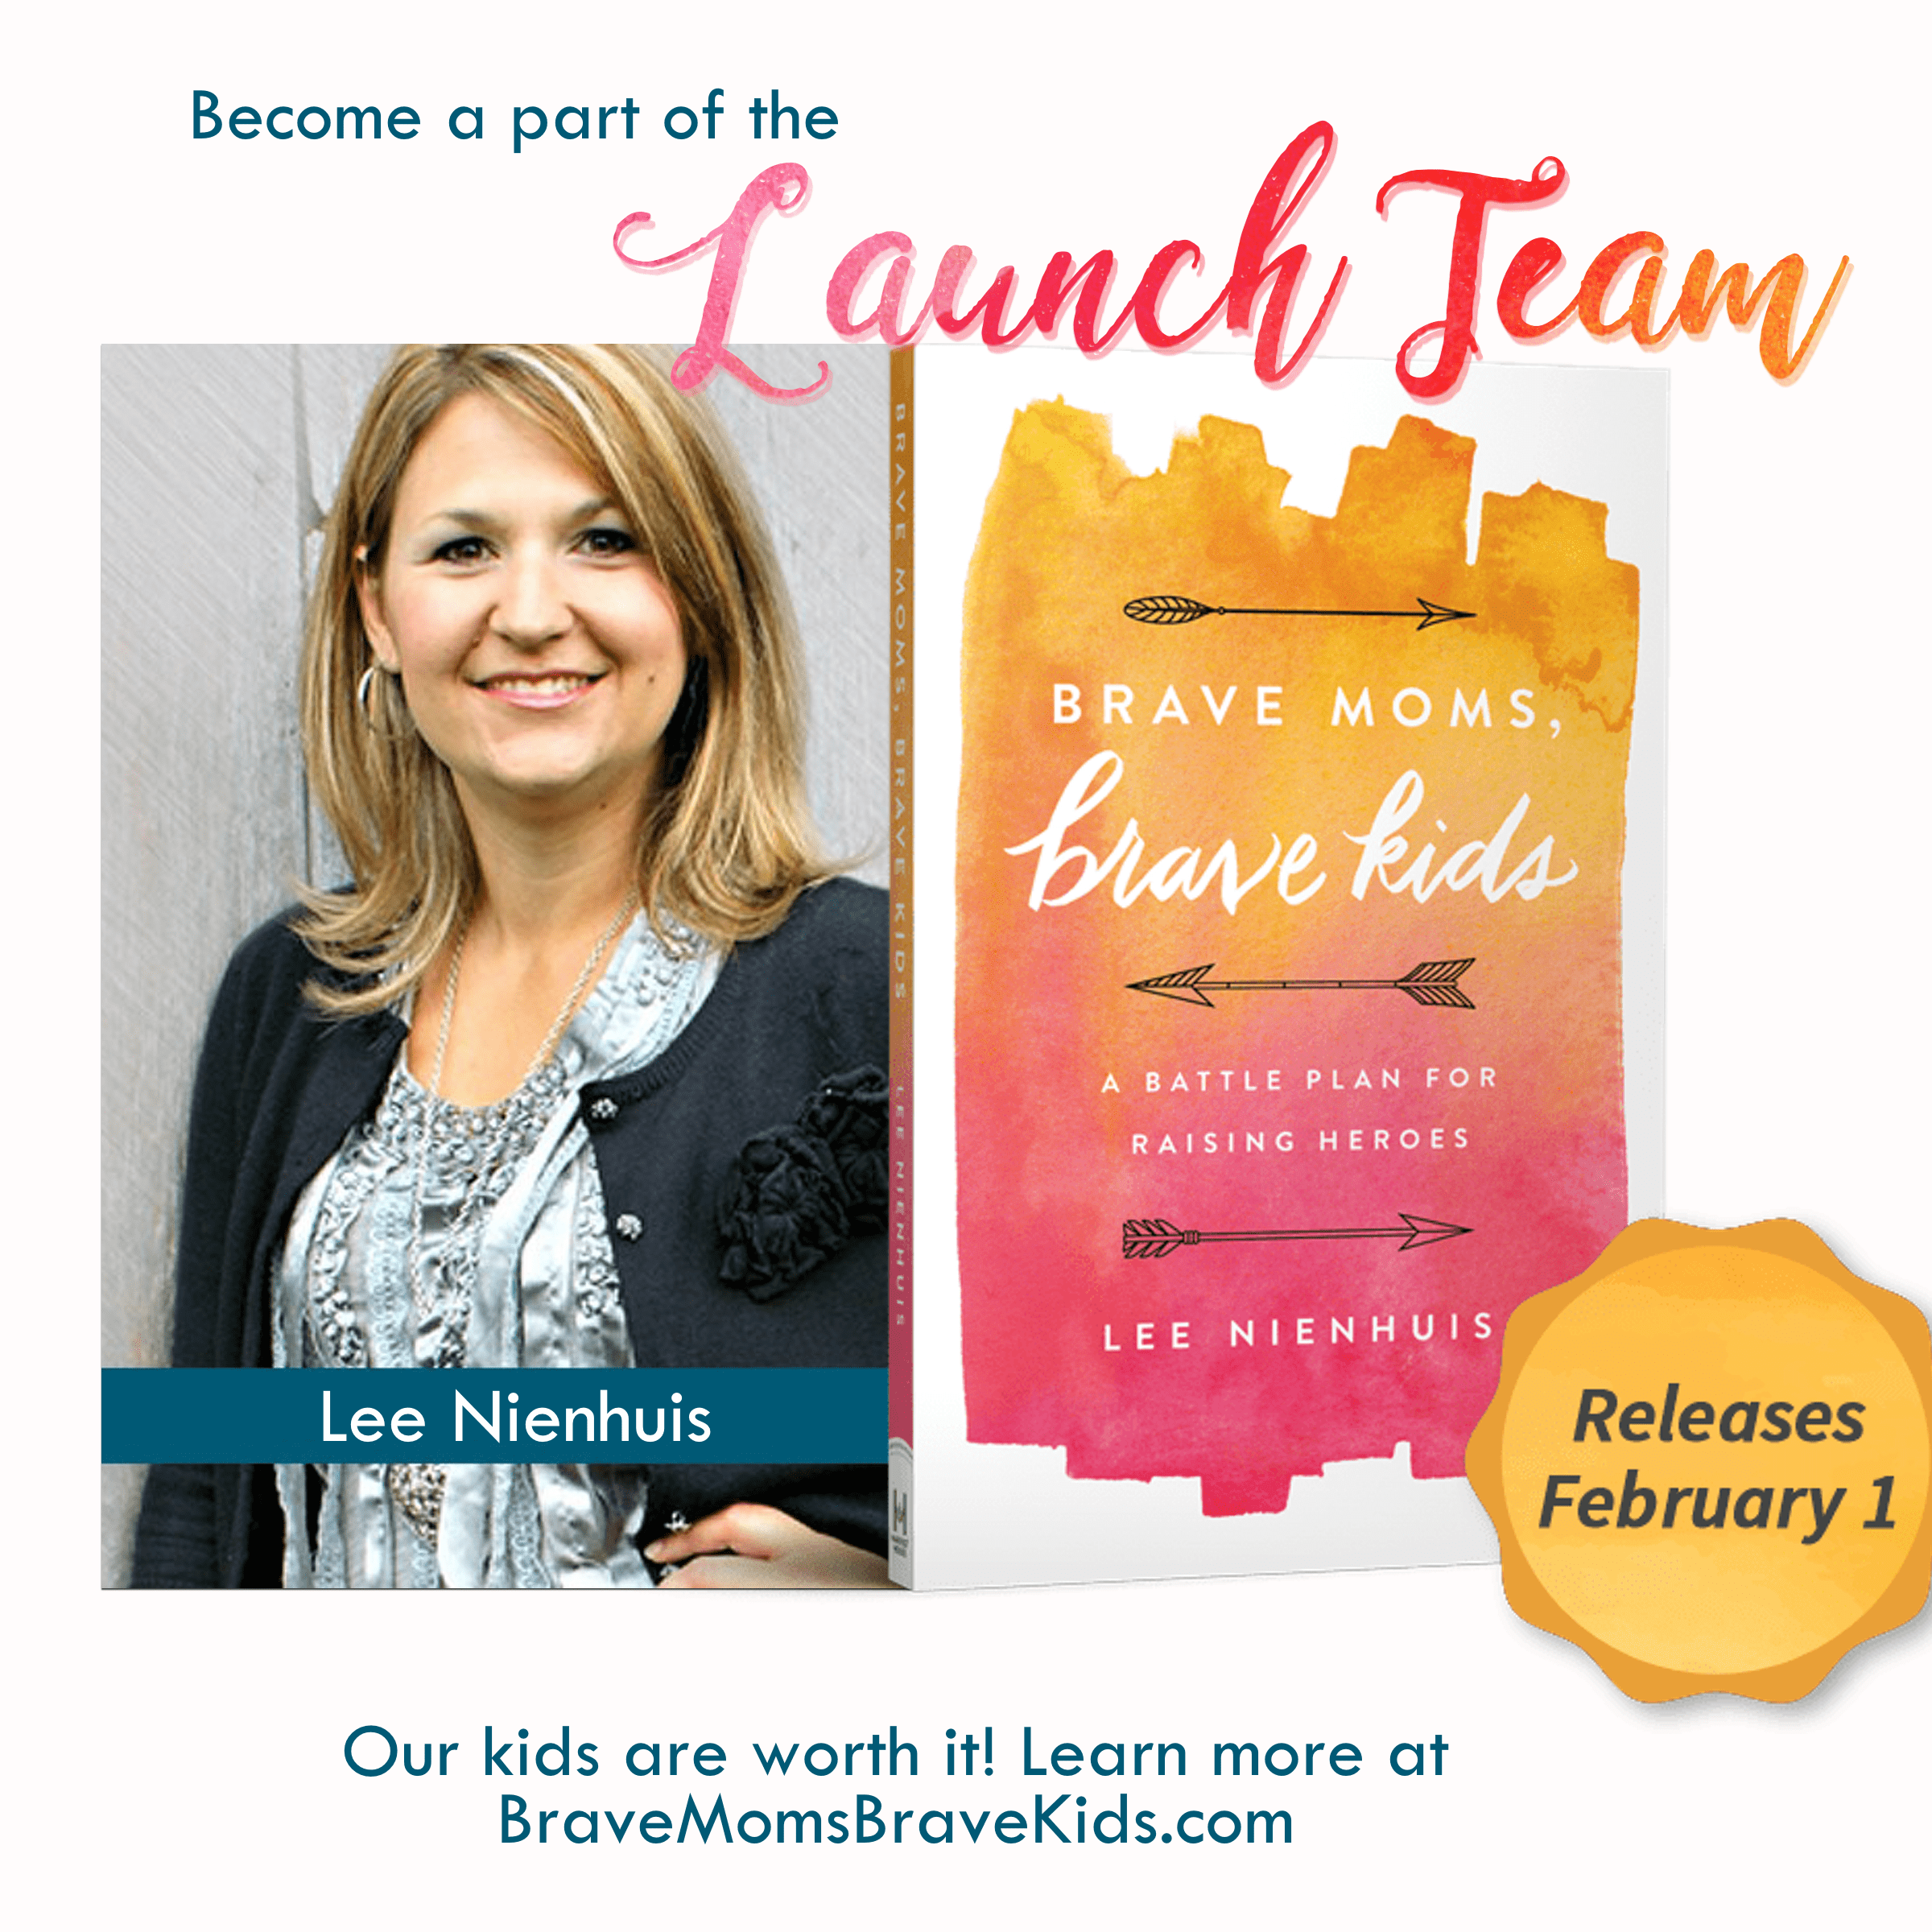 Join the Brave Moms, Brave Kids Launch Team!